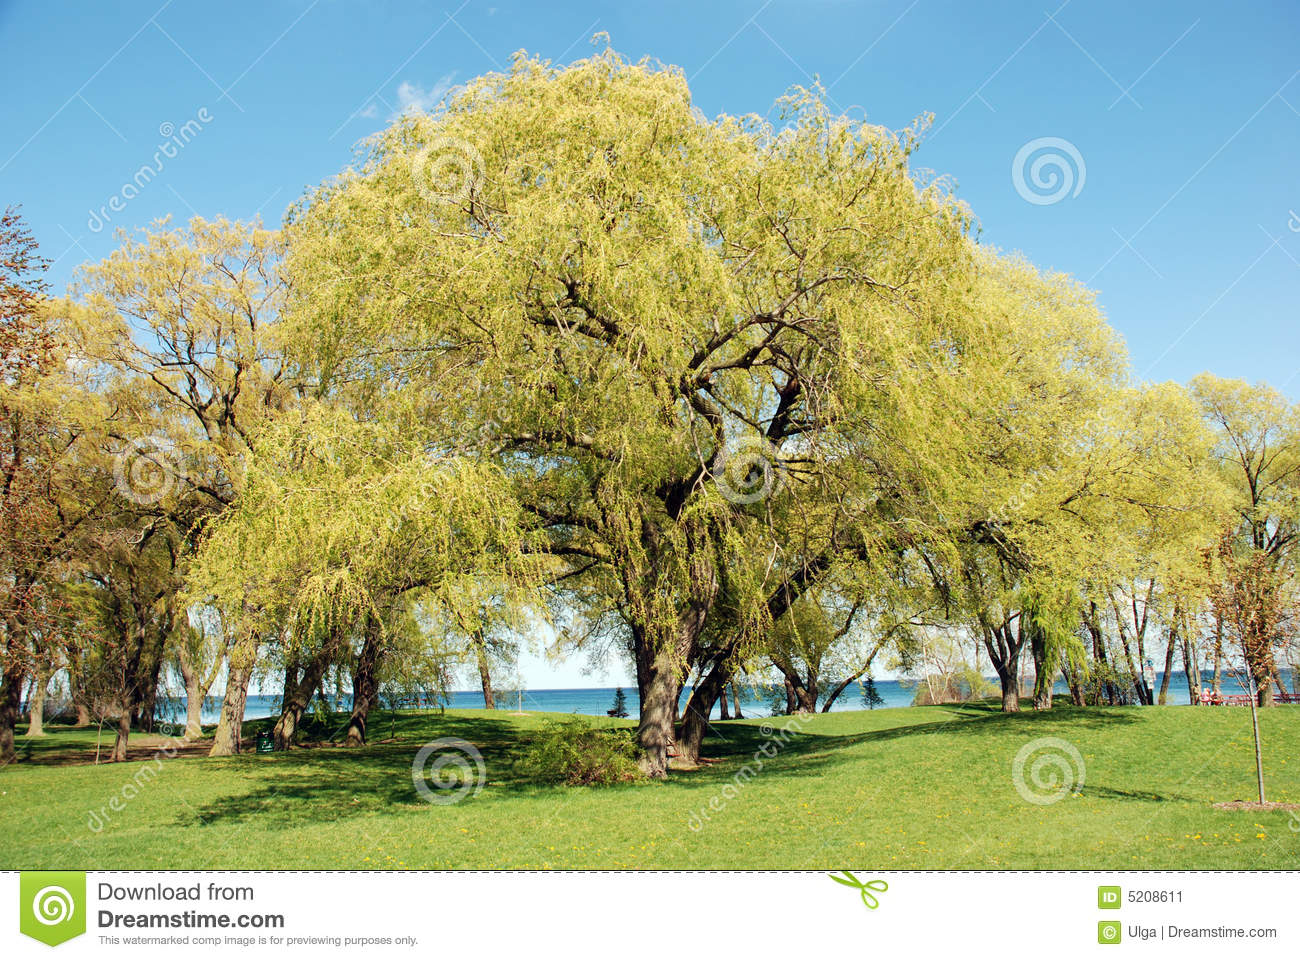 Weeping willow tree scene